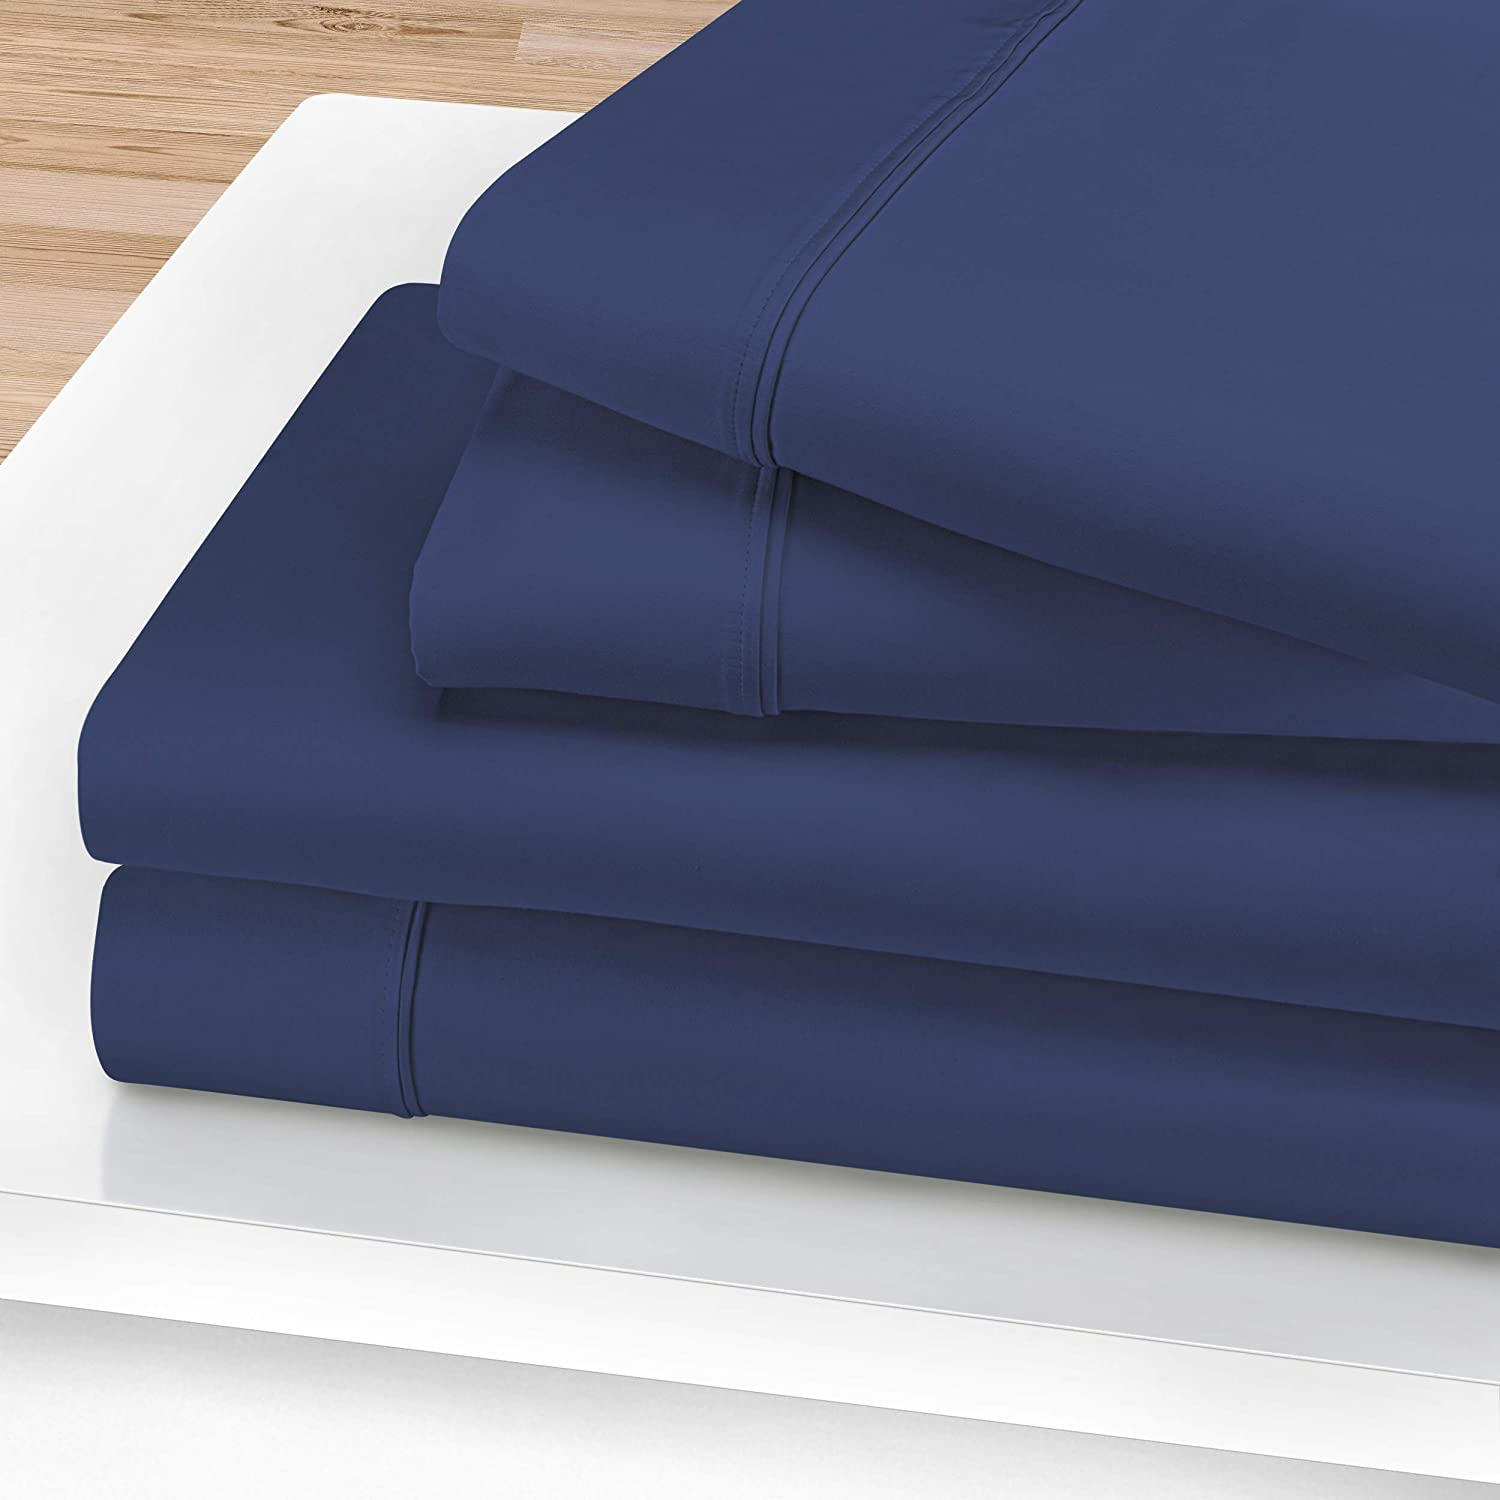 Celeste 100% Egyptian Cotton Sheet Set, 1200-Thread Count, Long-Staple Cotton, Soft, Silky Feel, Heavyweight, Fully Elasticized Fitted Sheet, Deep Pockets, Solid, Cal King, Navy Blue, 4-Pieces